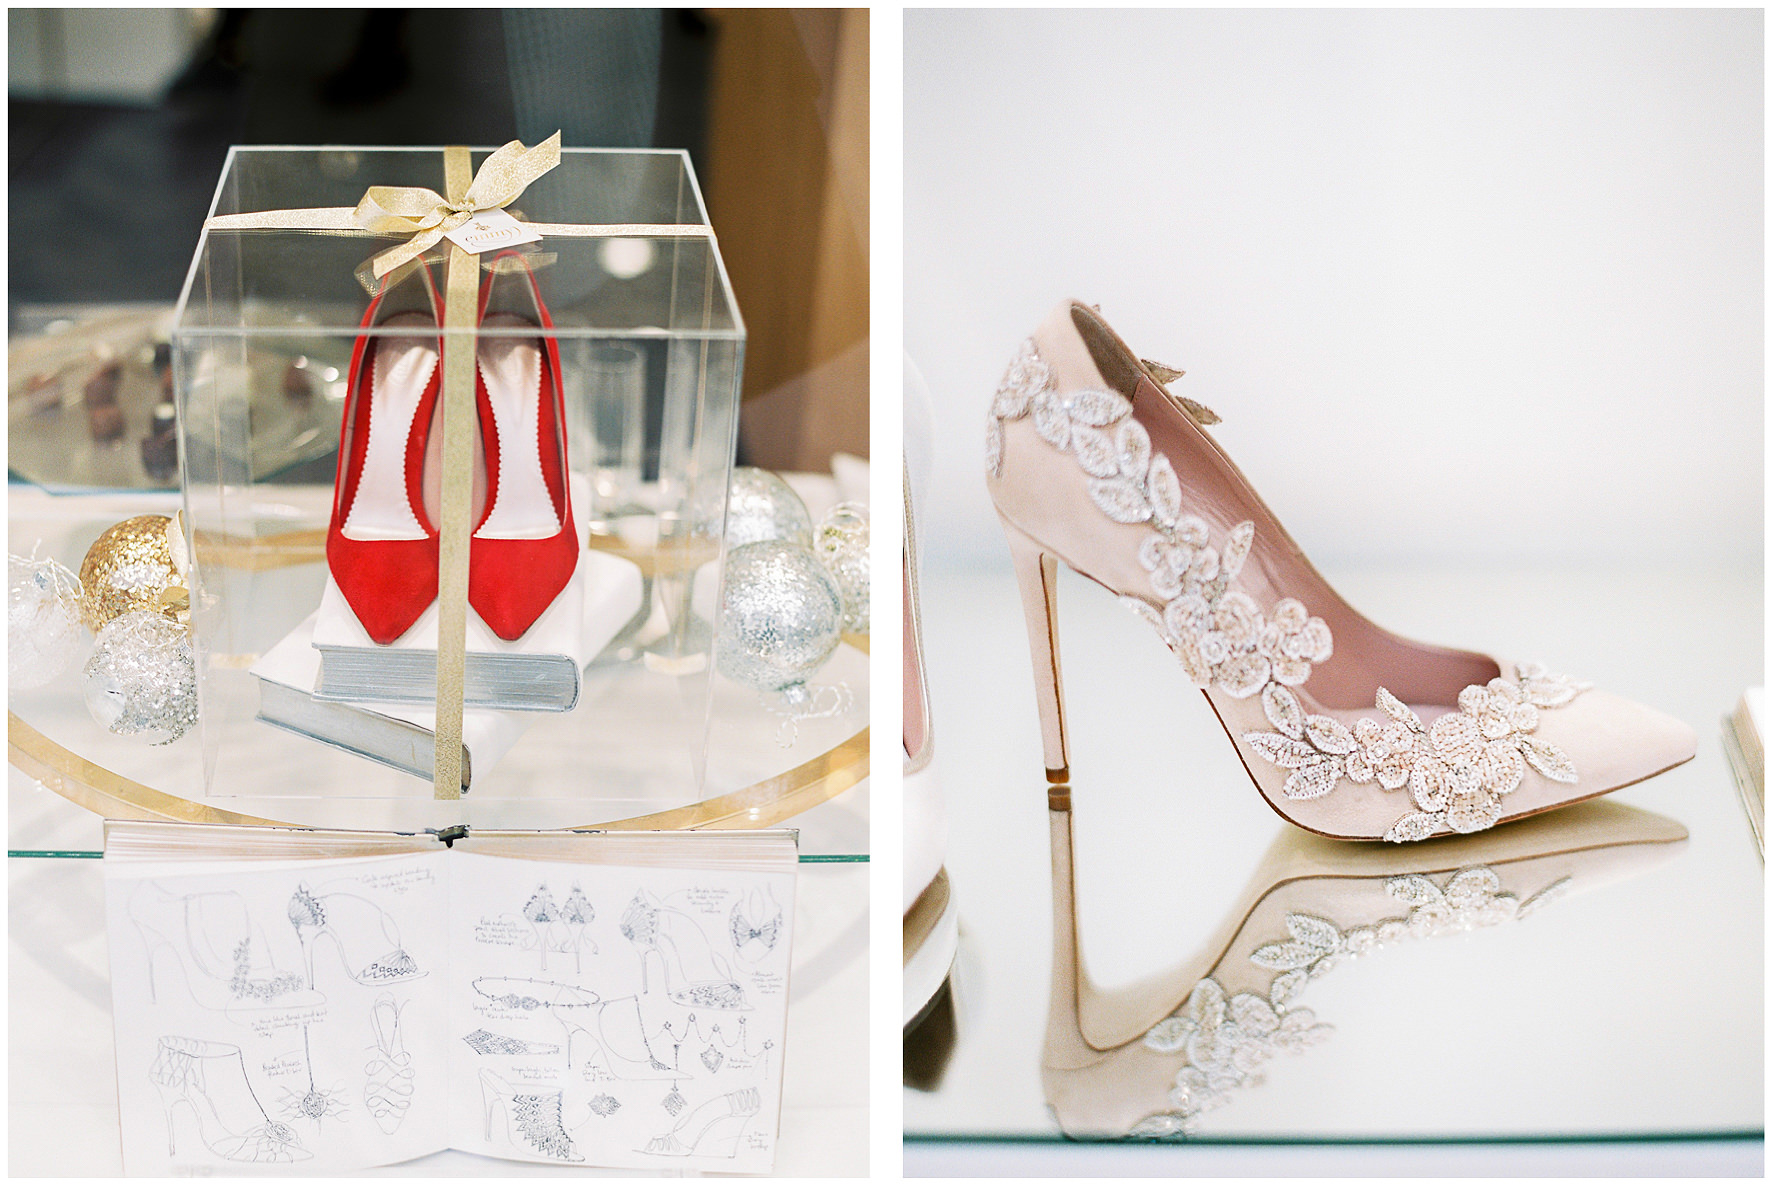 Emmy London, Emmy, Bridal shoes, boutique, wedding shoes, flagship store, Fulham Road, Chelsea Collection, baby shoes, flower girl shoes. Lucy Davenport Photography